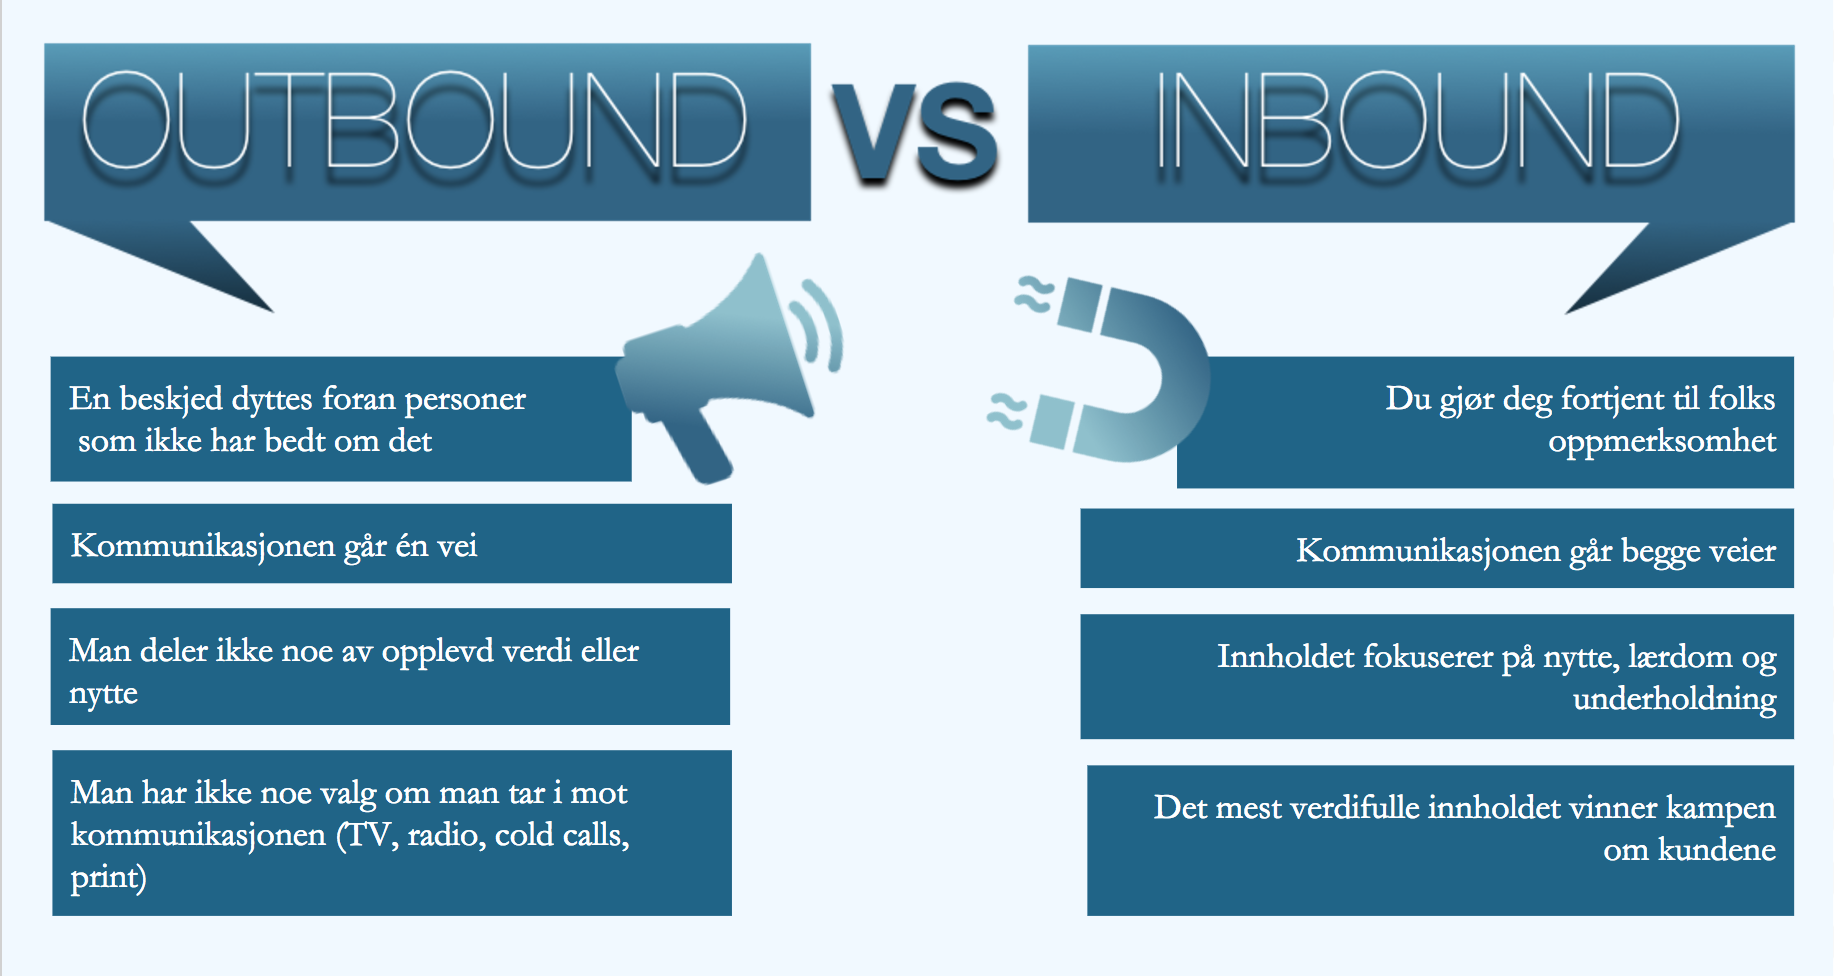 Outbound VS inbound illustration